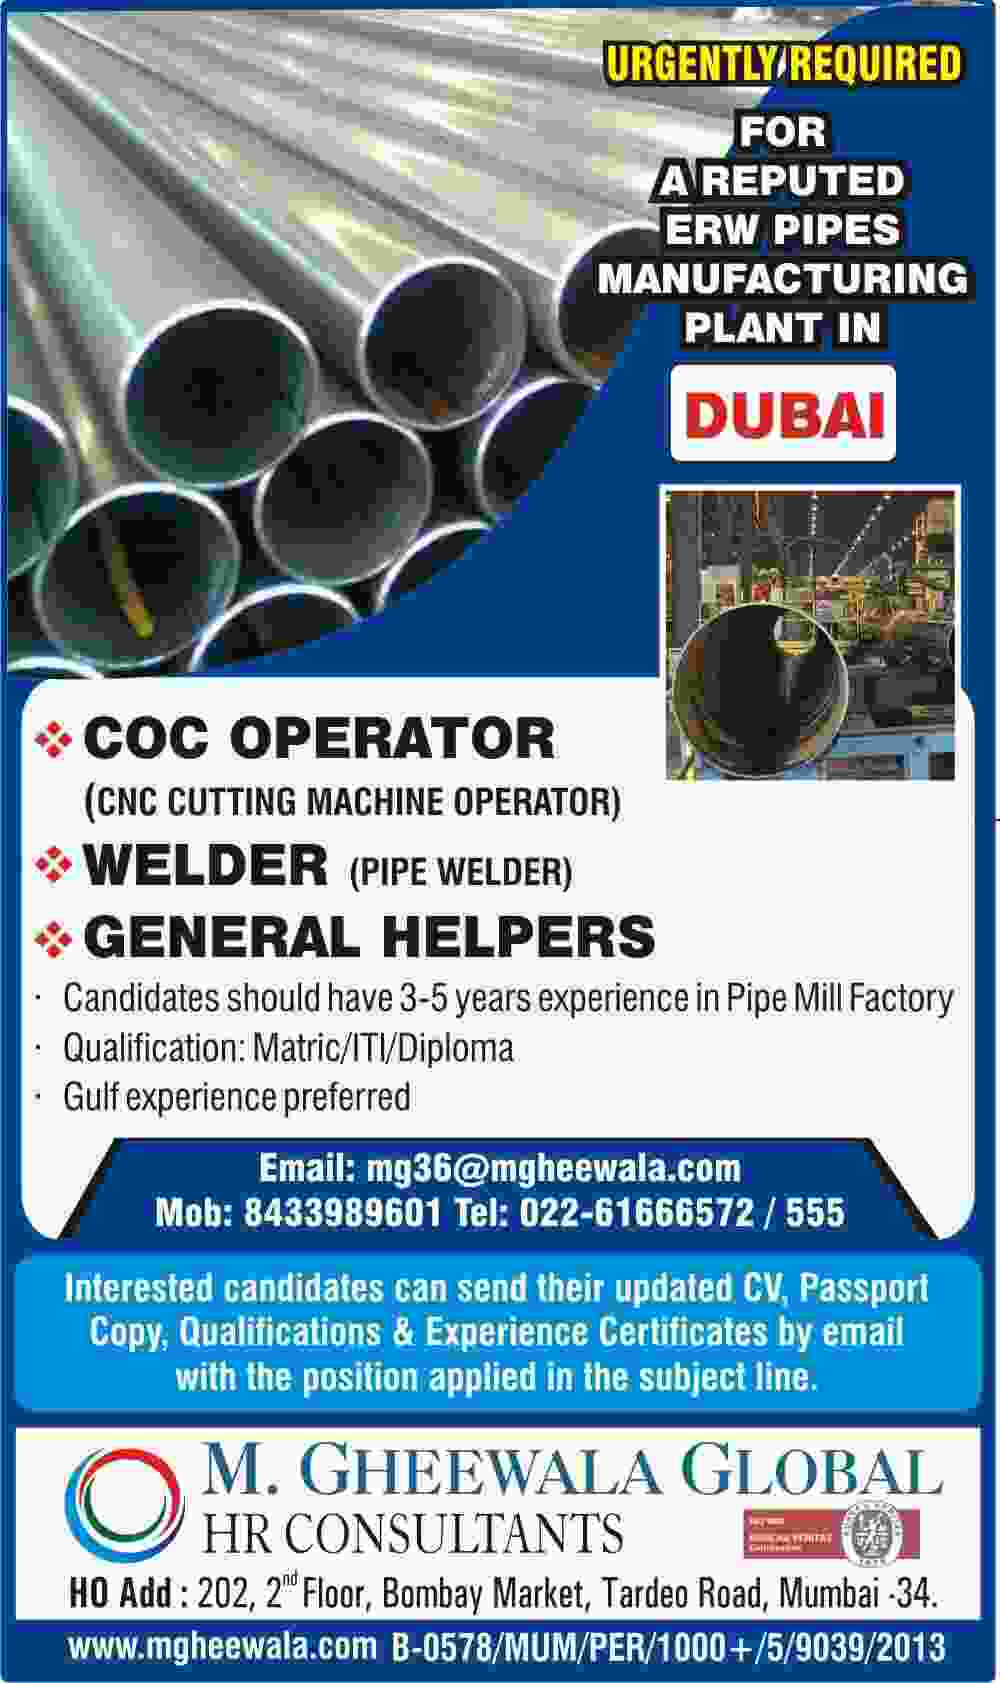 Welder jobs/CNC/Helper – Urgently required for a reputed Co. in Dubai